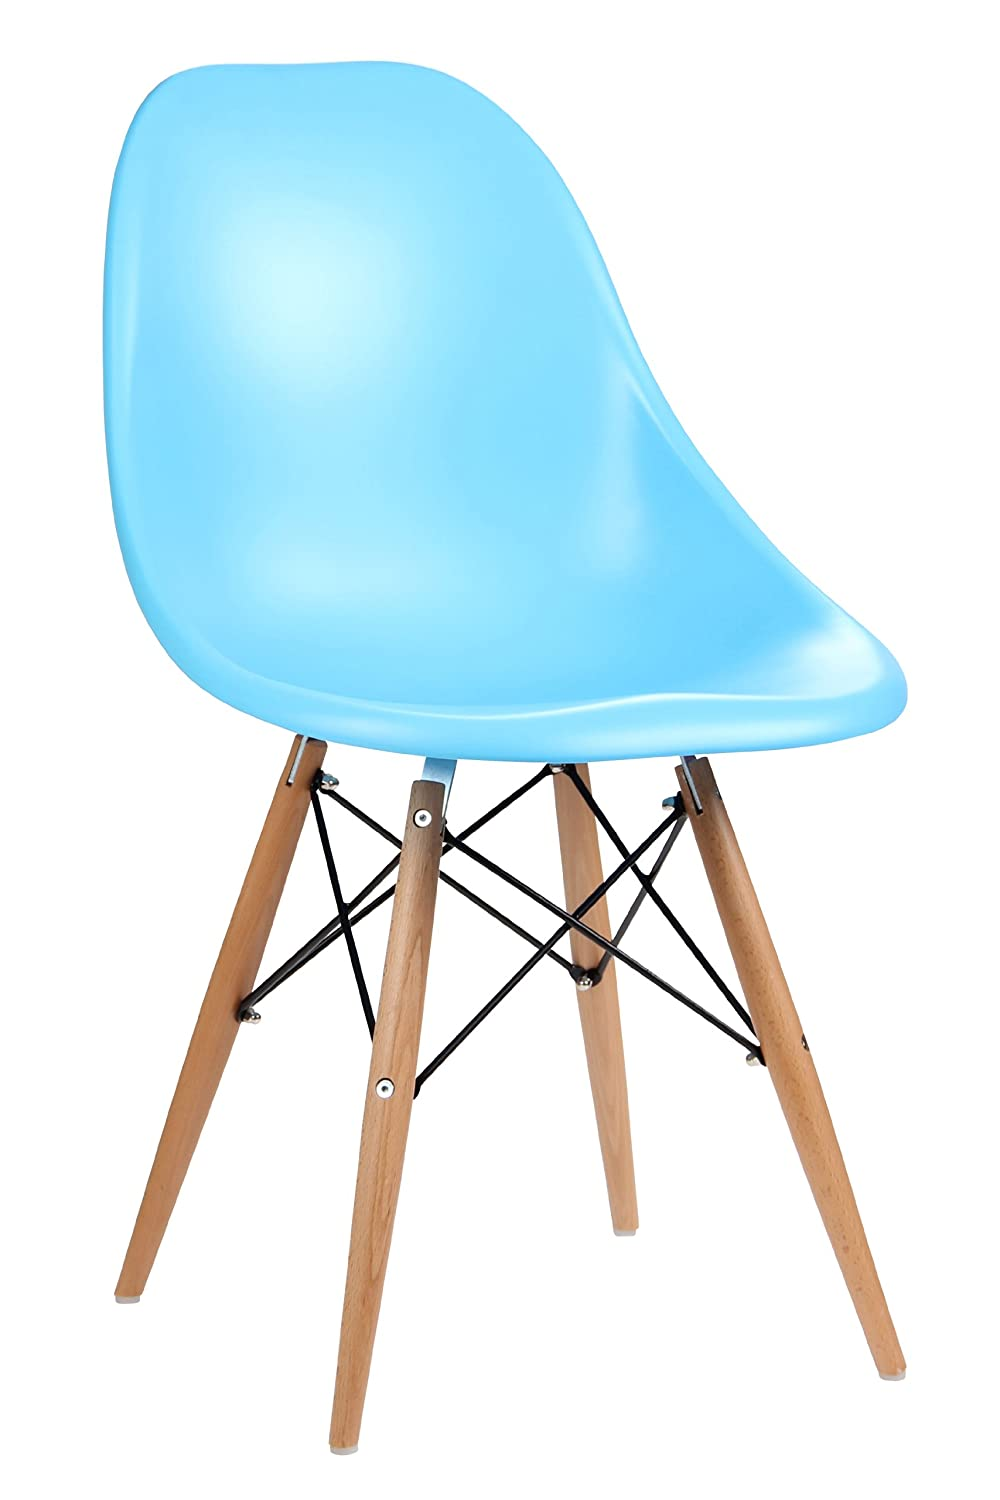 Premier Housewares ABS Chair with Wooden Legs - Blue, Set of 2 8881183